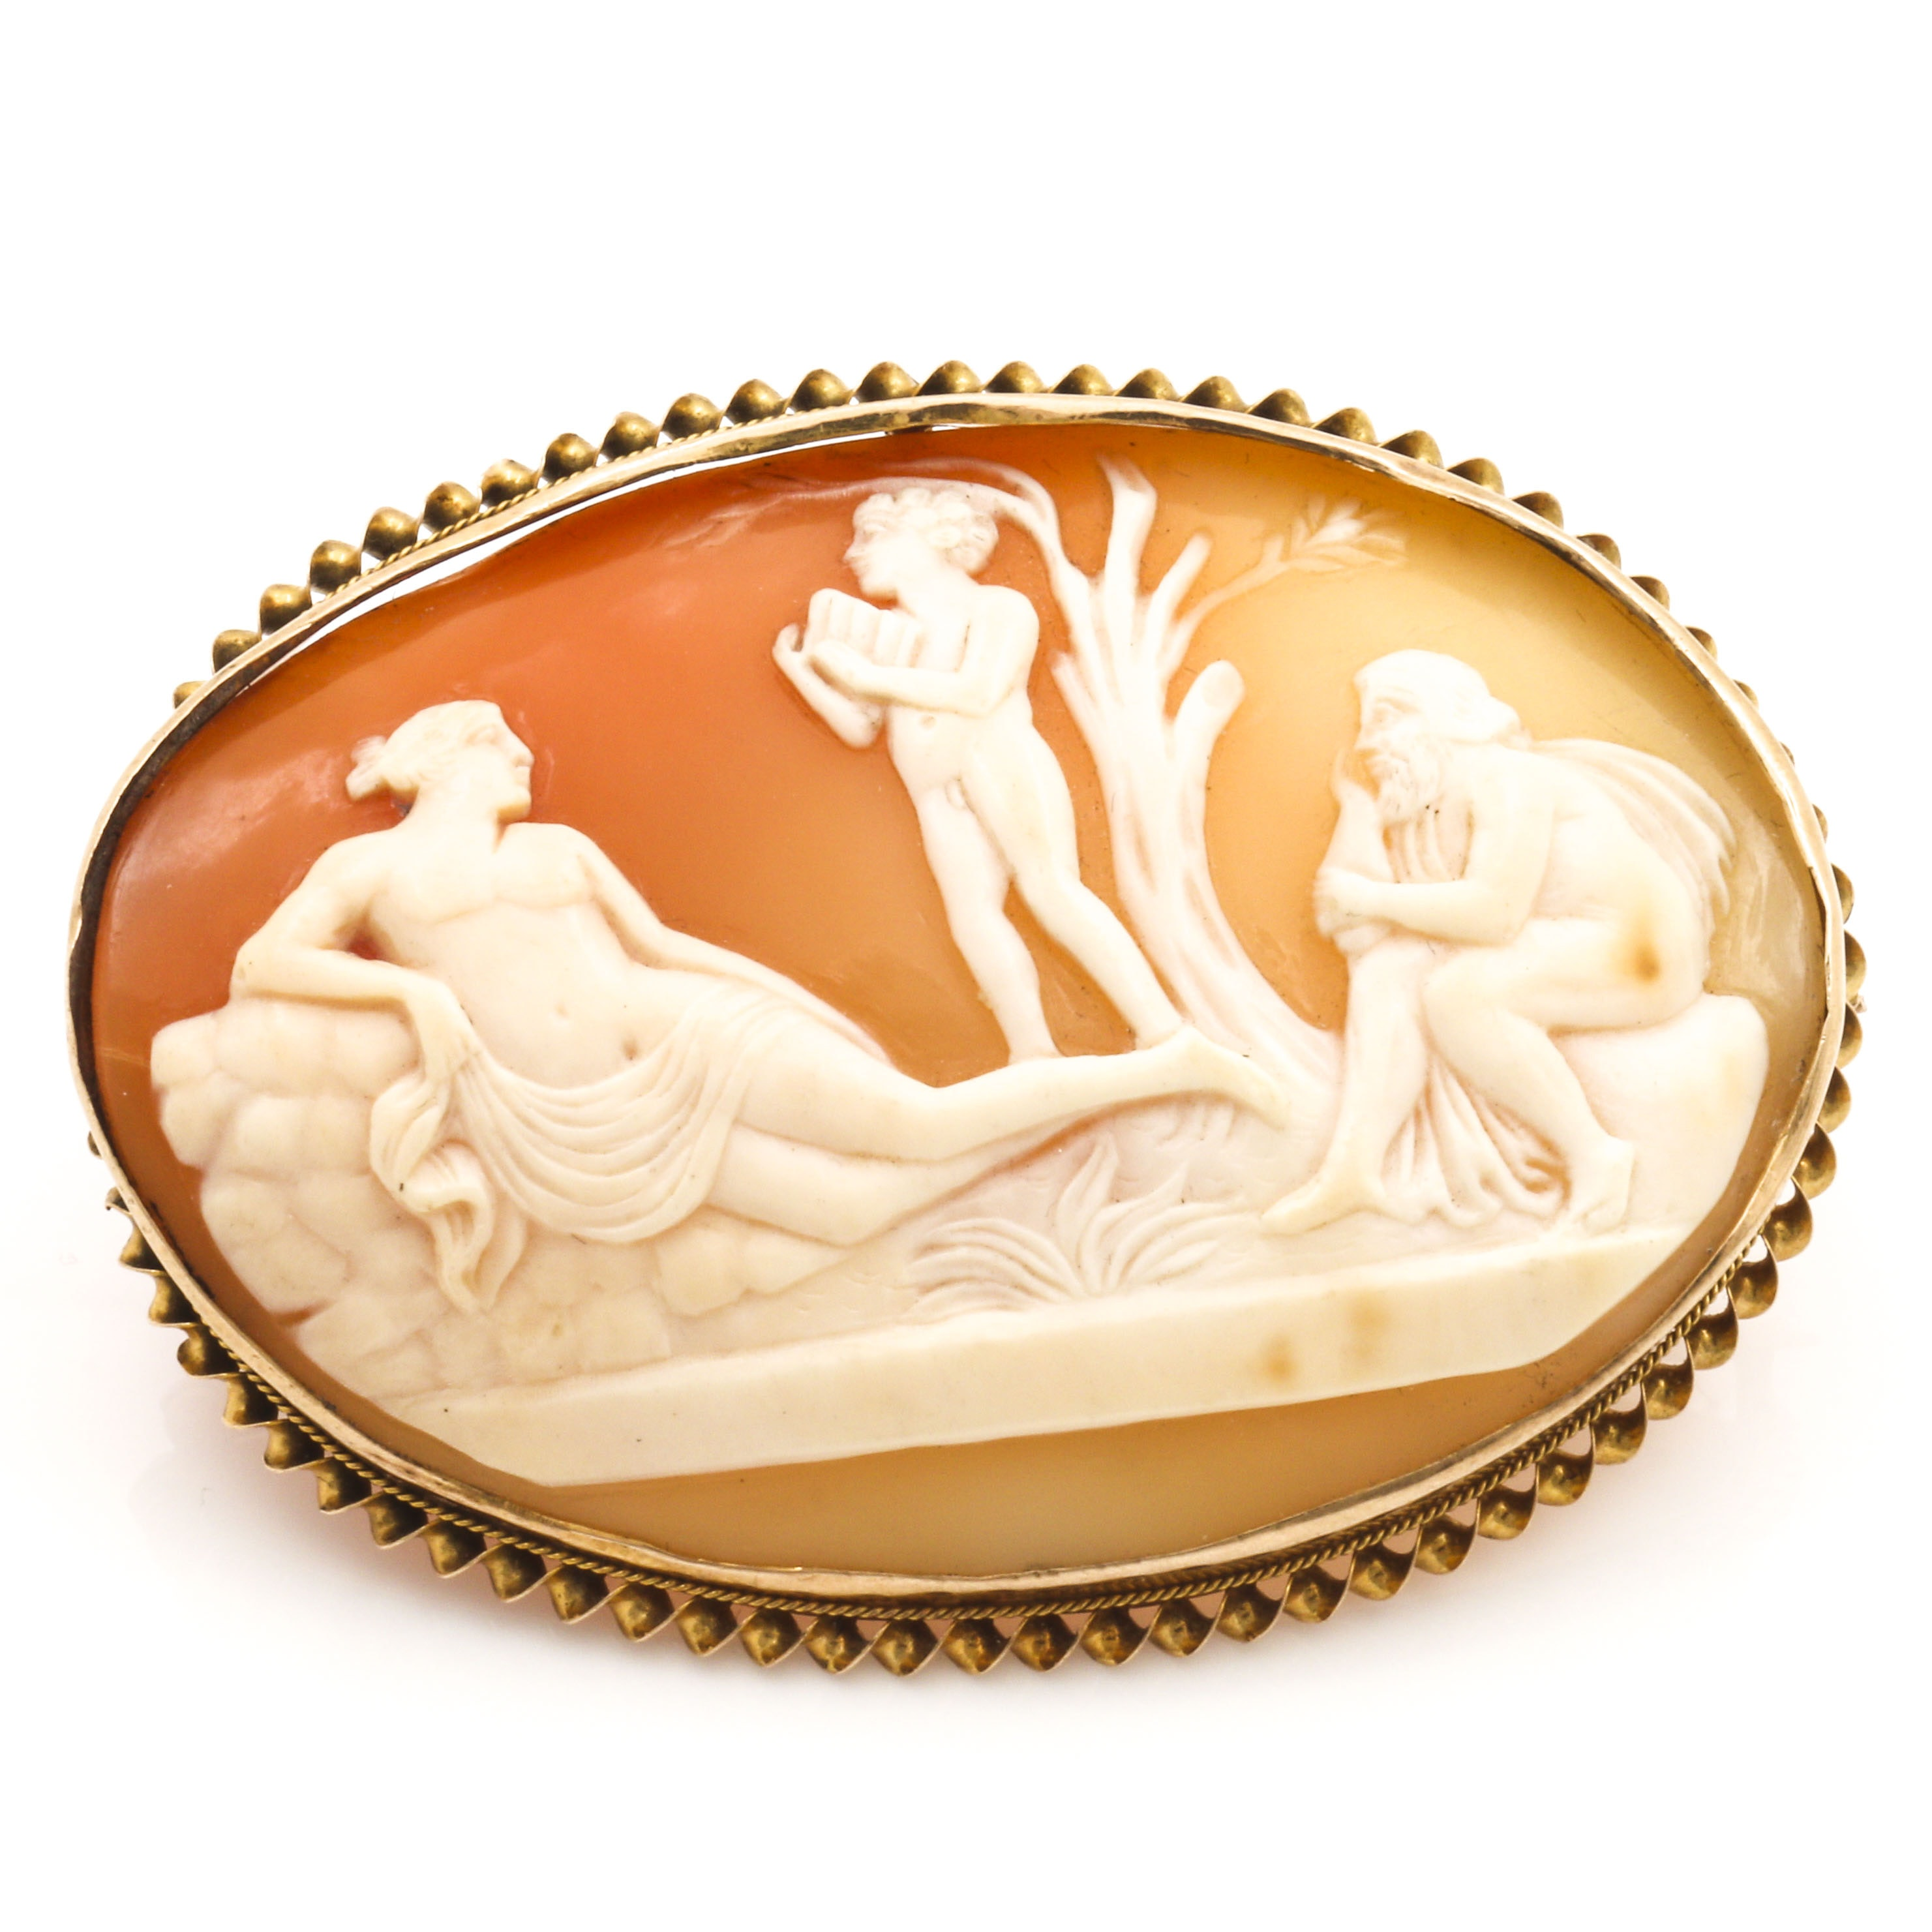 10K Yellow Gold Carved Shell Cameo Brooch